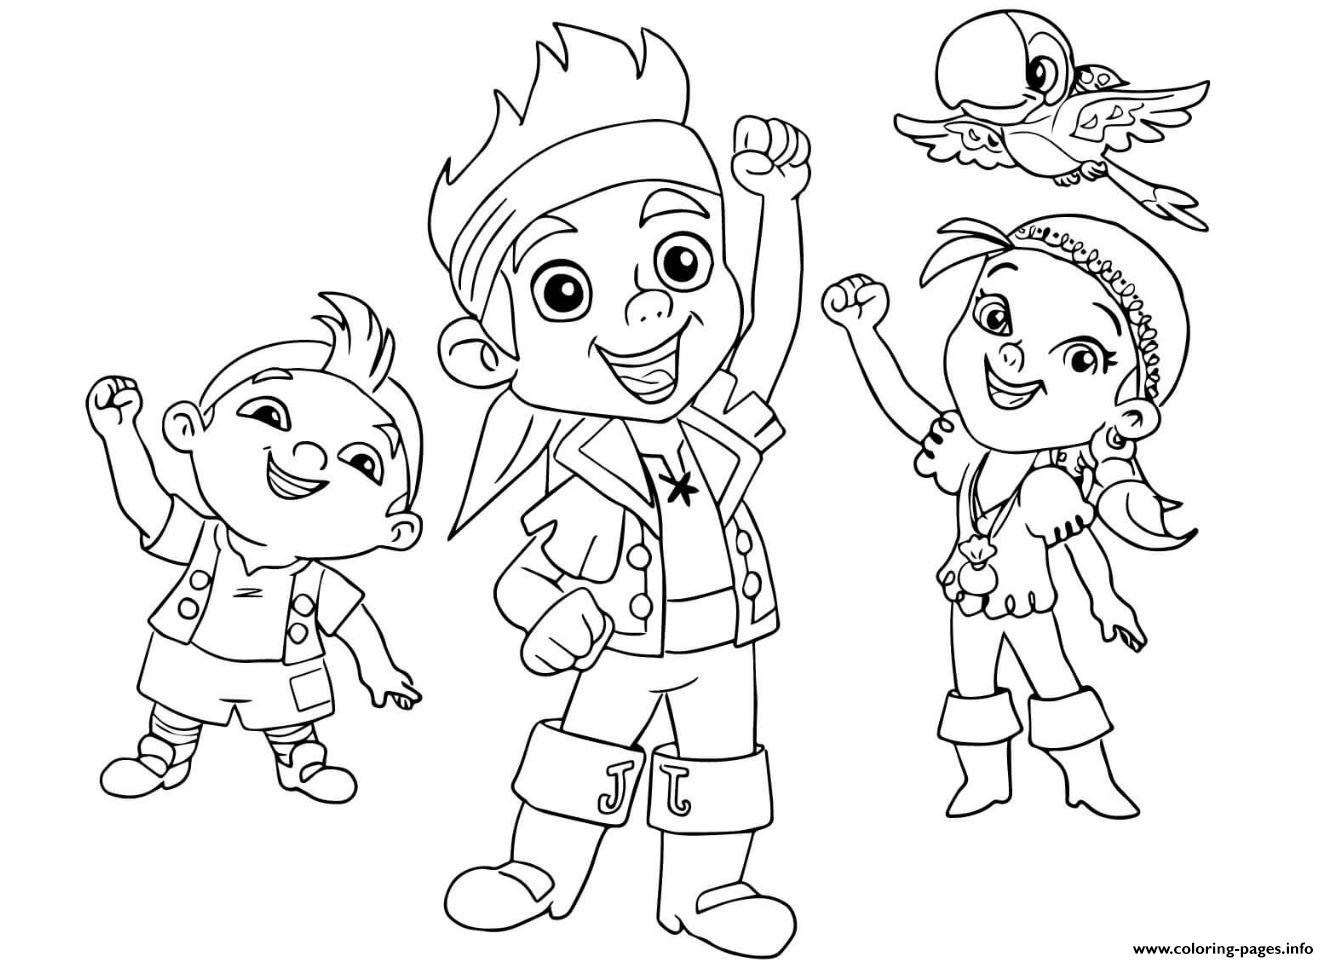 Jake And The Neverland Pirates Team Halloween Coloring Pages ...